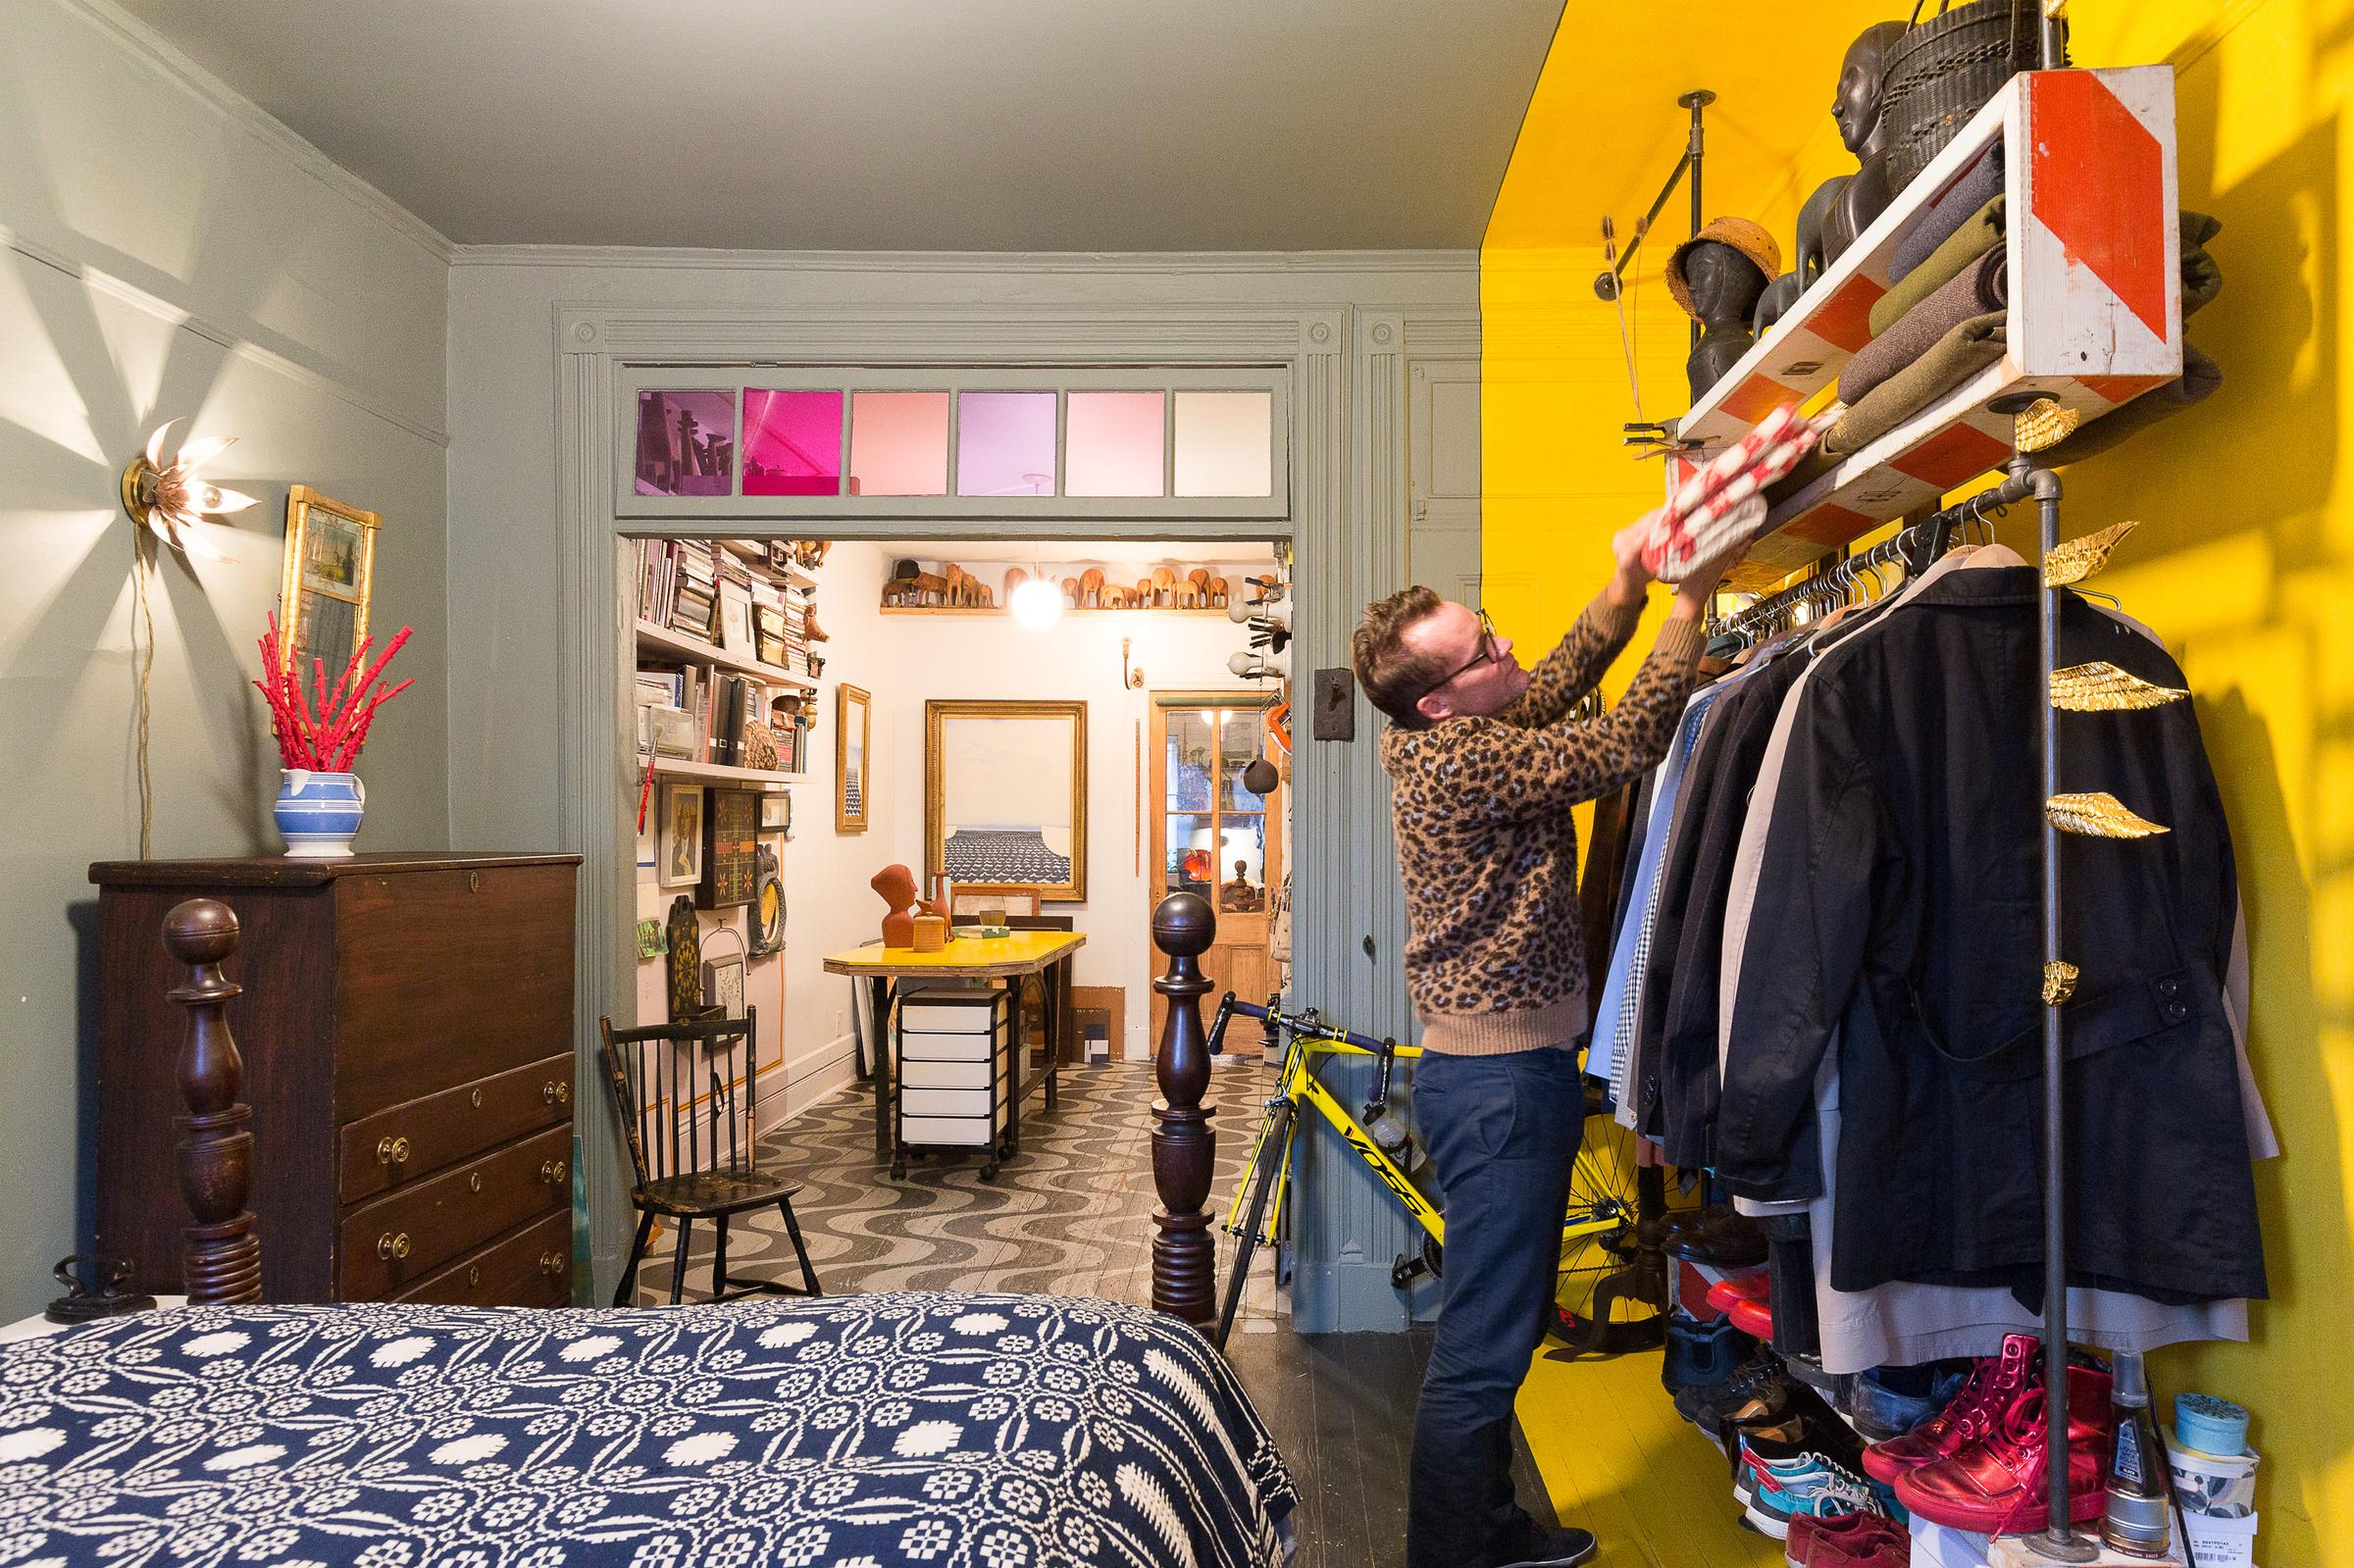 Fixes for Tight Spaces From Desperate New Yorkers